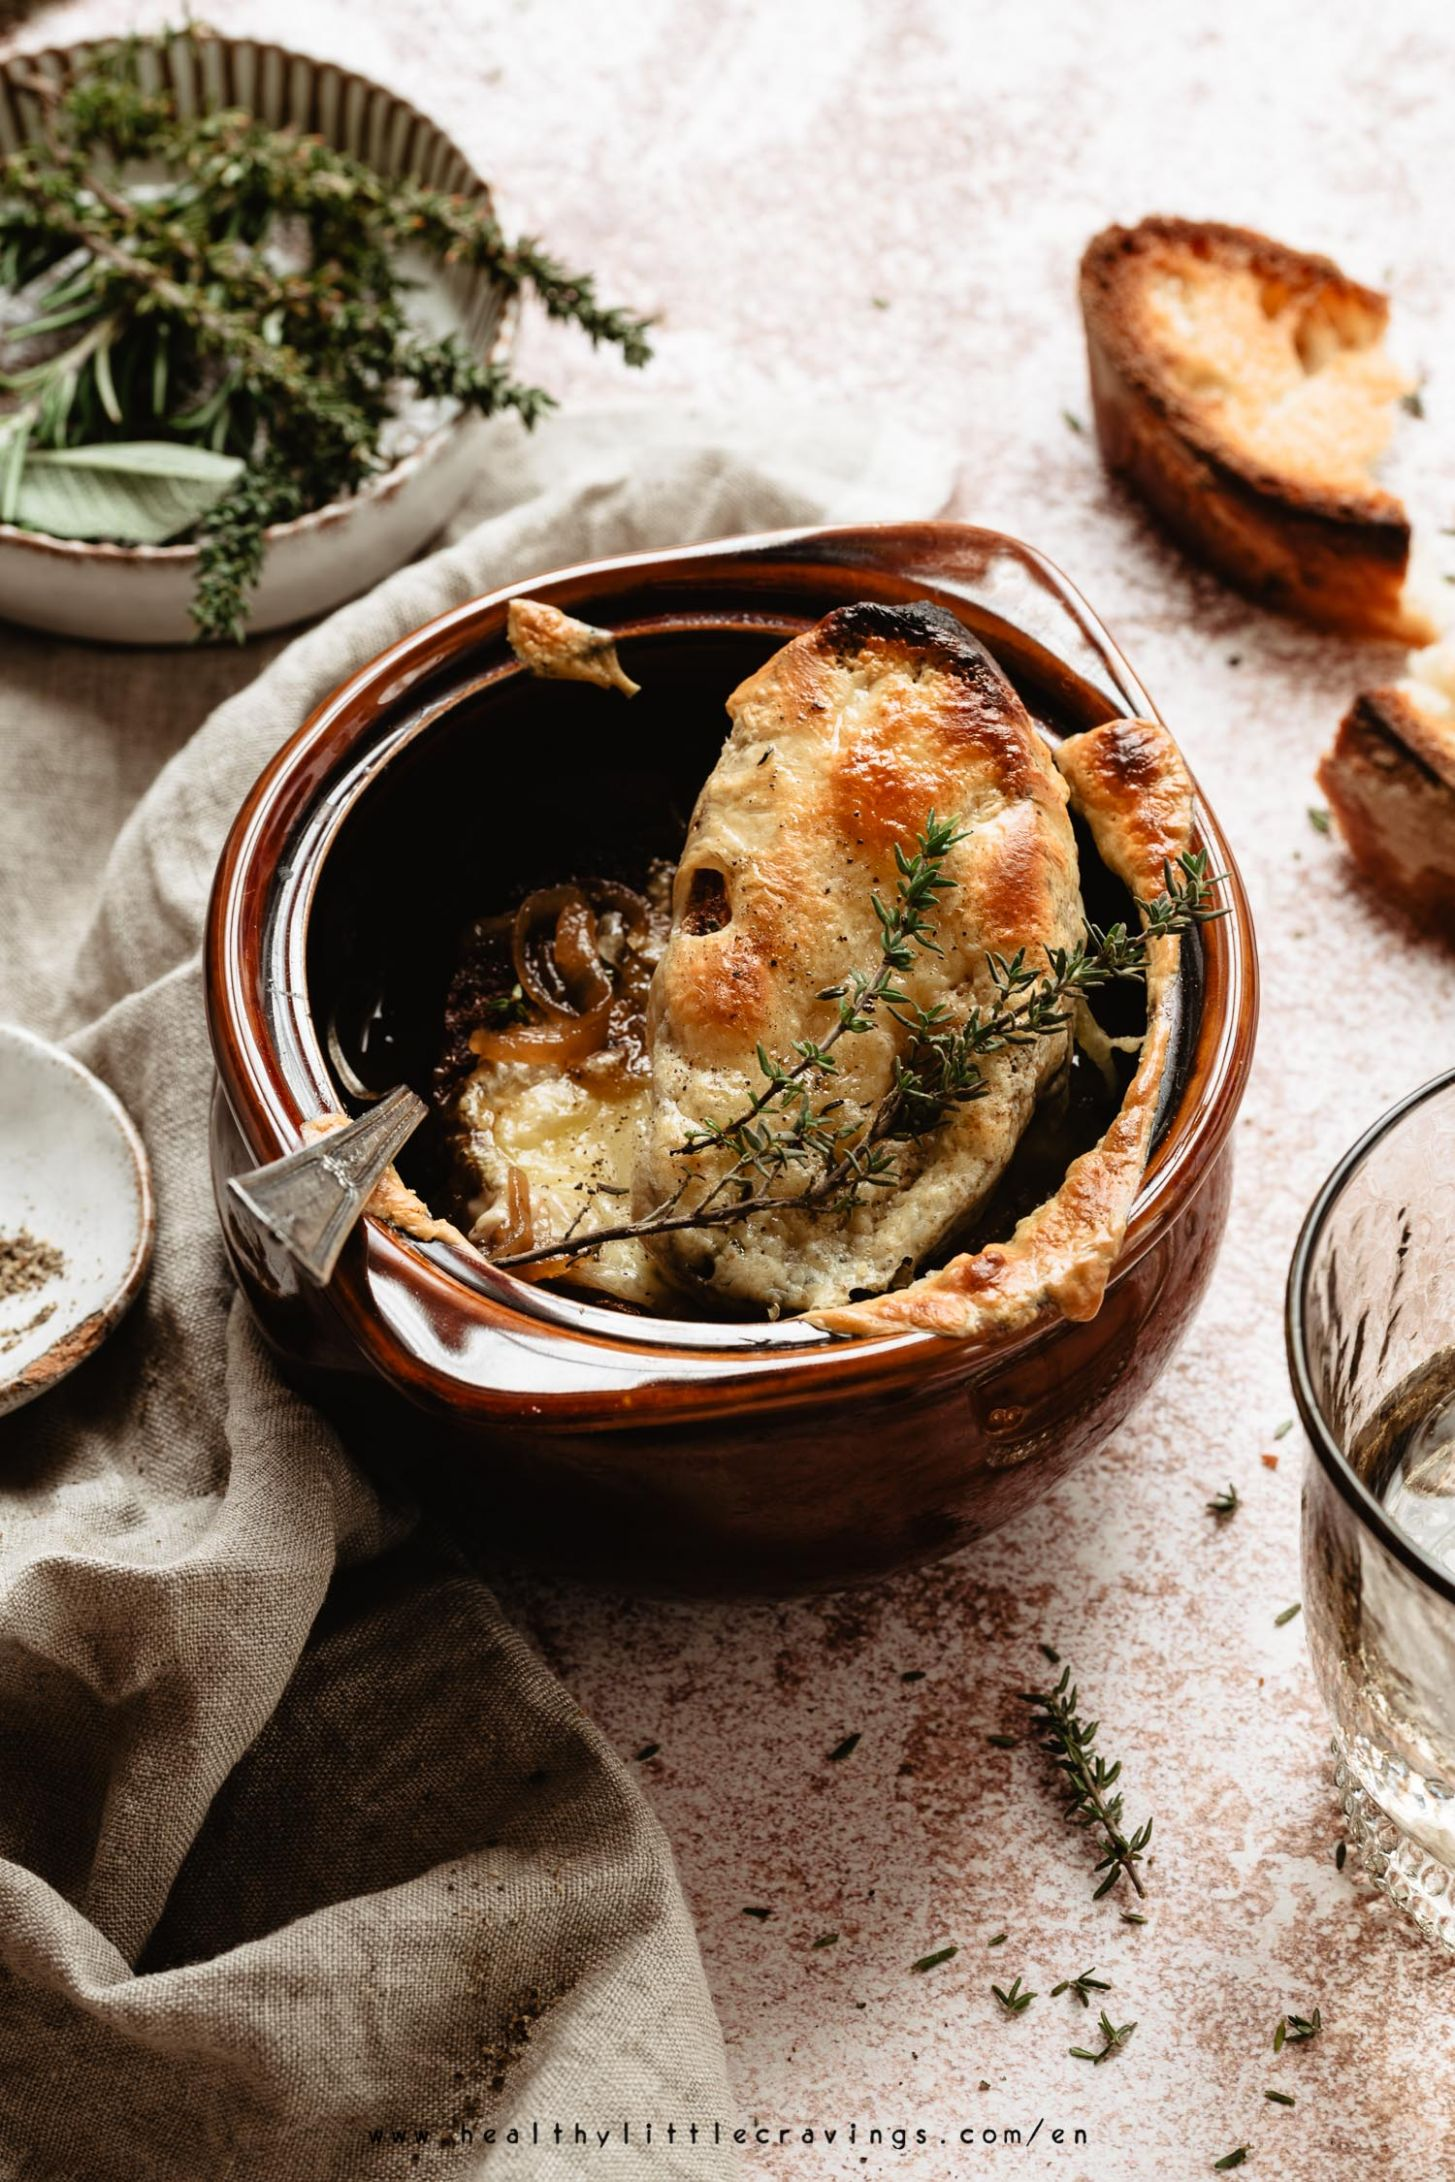 VEGETARIAN FRENCH ONION SOUP [EASY RECIPE] - Recipe Vegetarian French Onion Soup